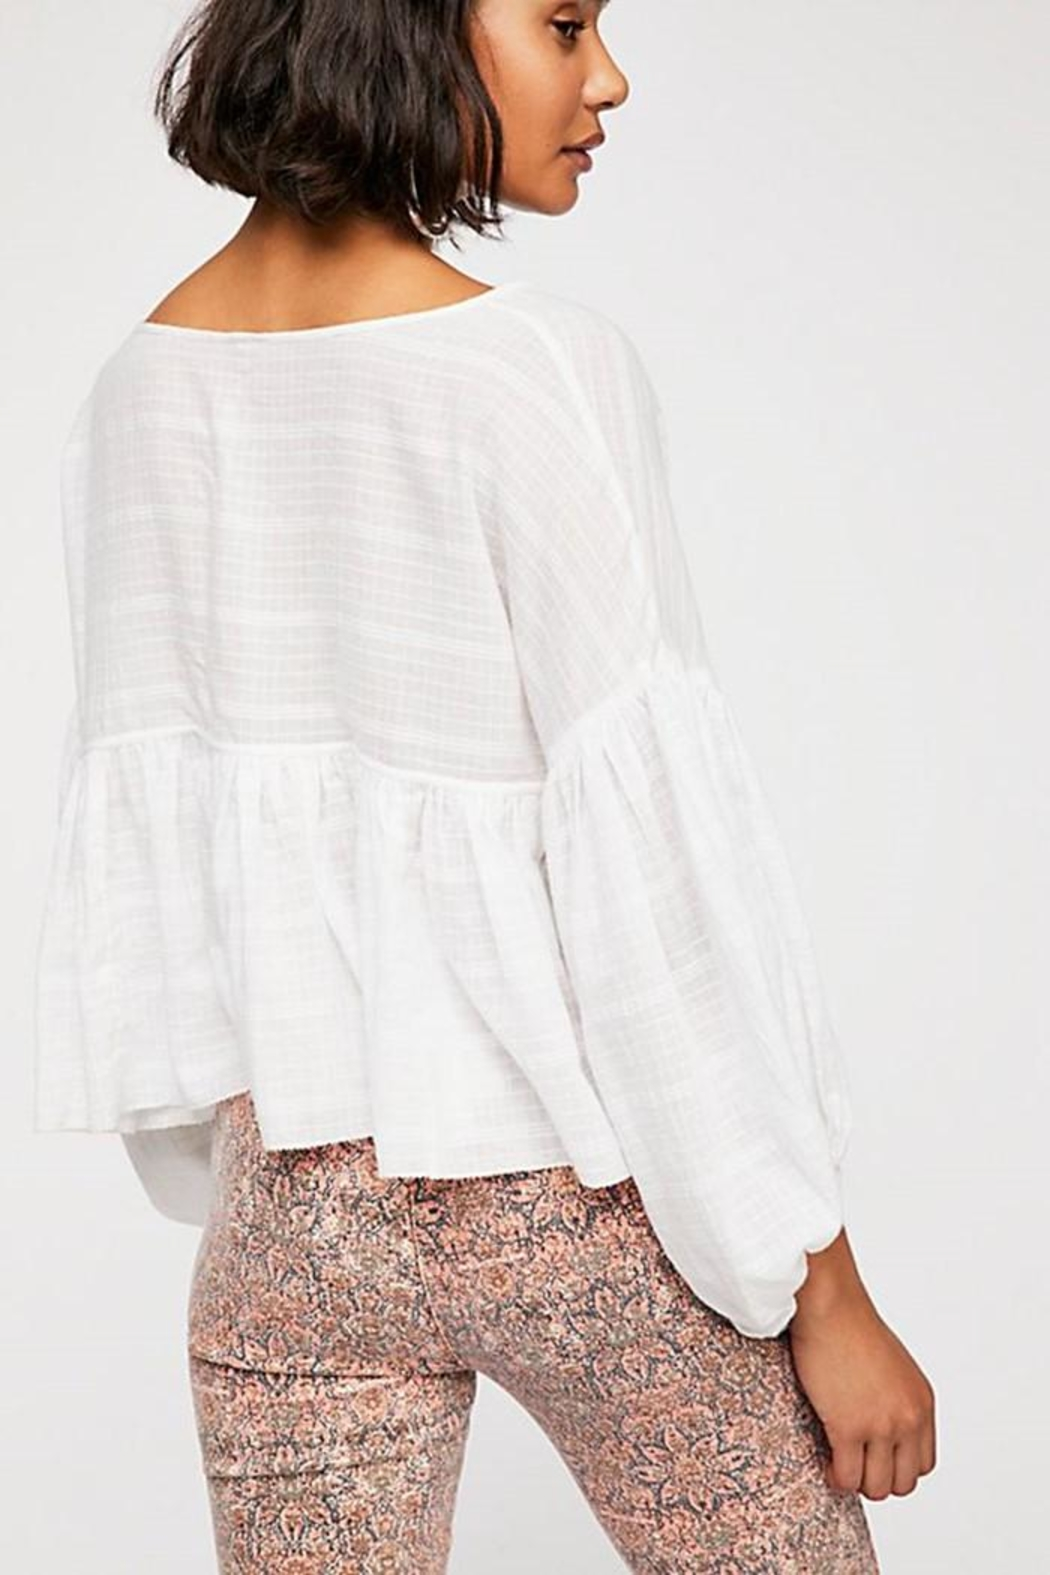 Free People Beaumont Mews Blouse - Front Full Image